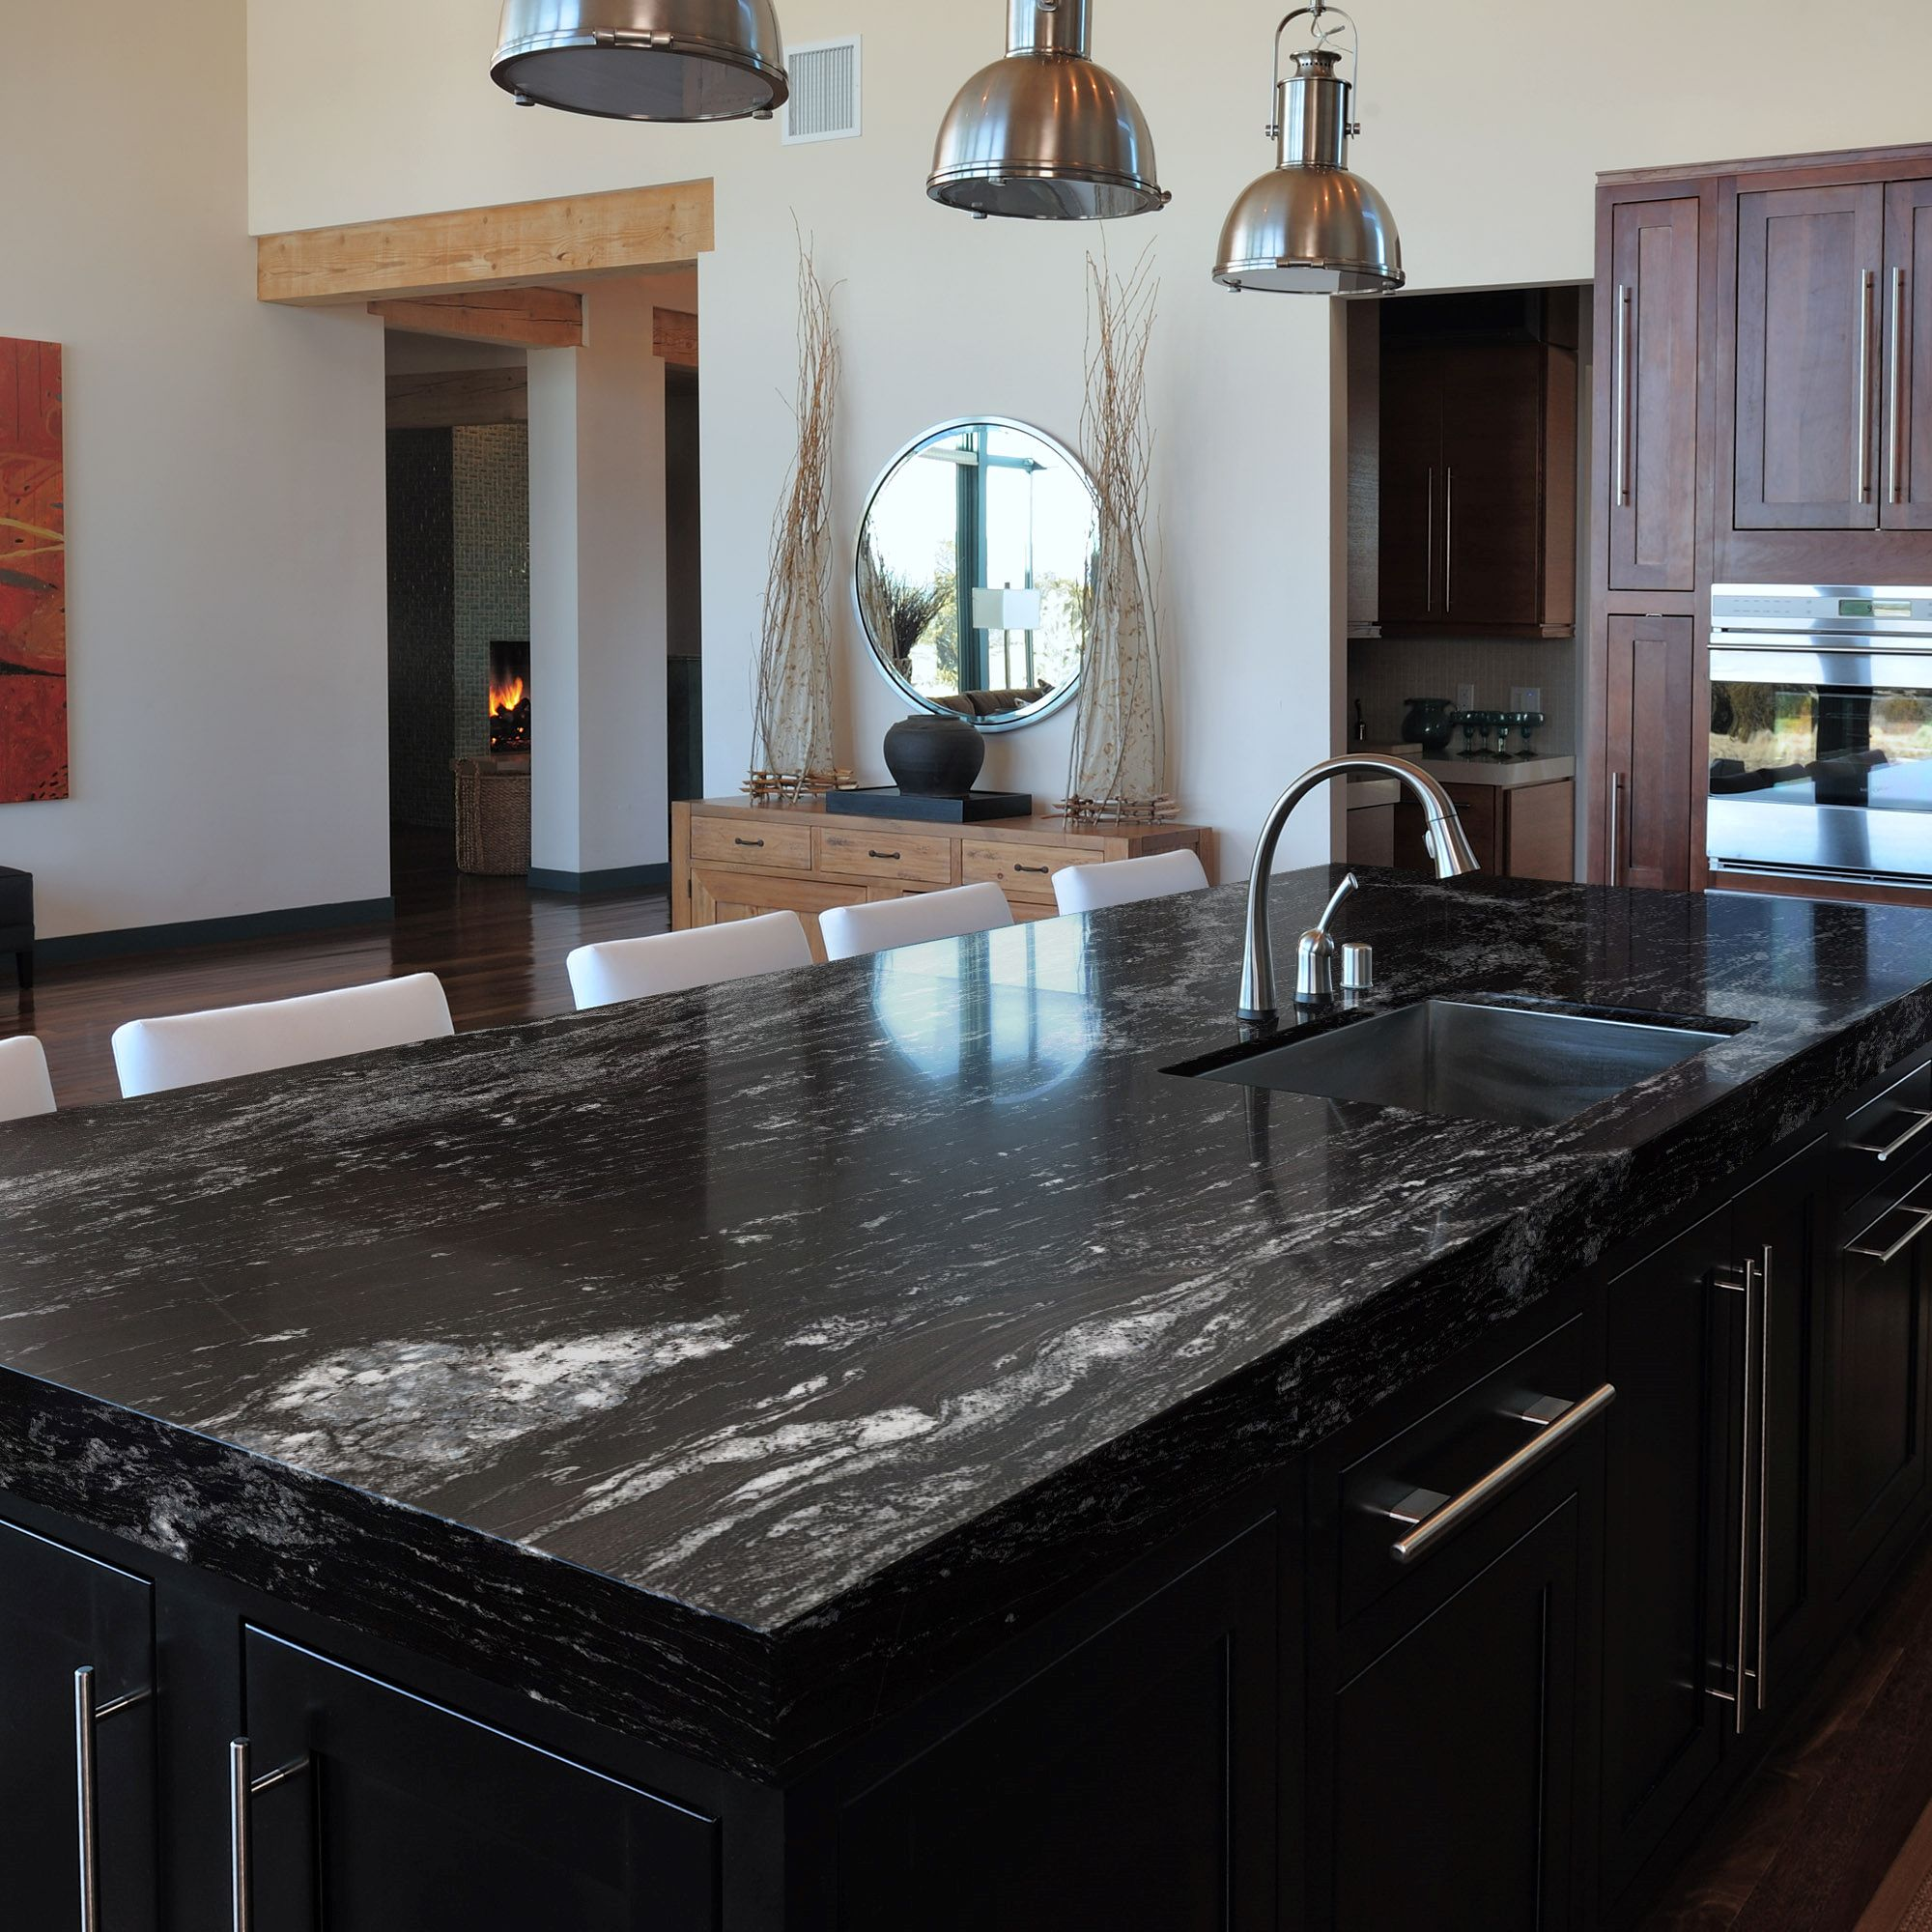 most popular granite countertops colors 2021 in 2020 on home office paint colors 2021 id=29610